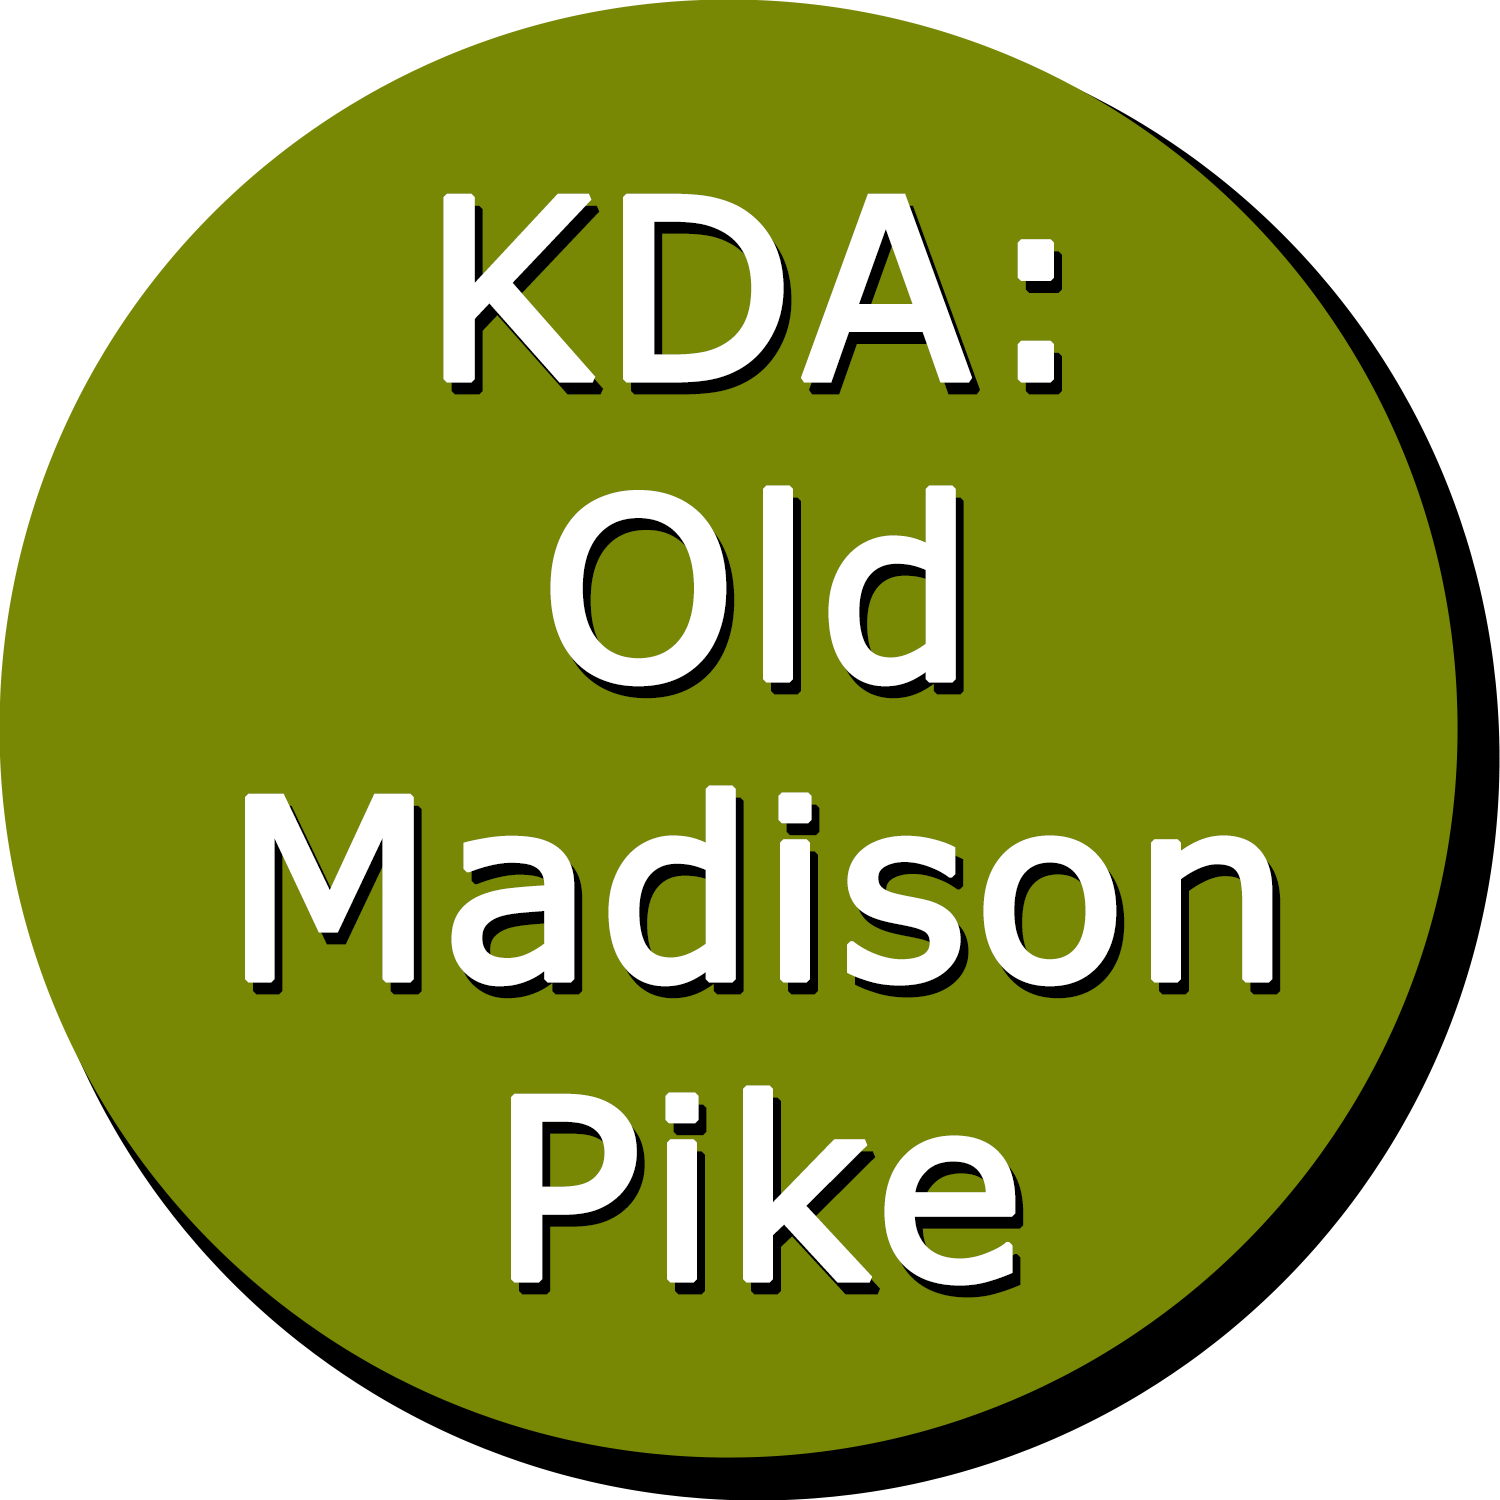 KDA: Old Madison Pike Button